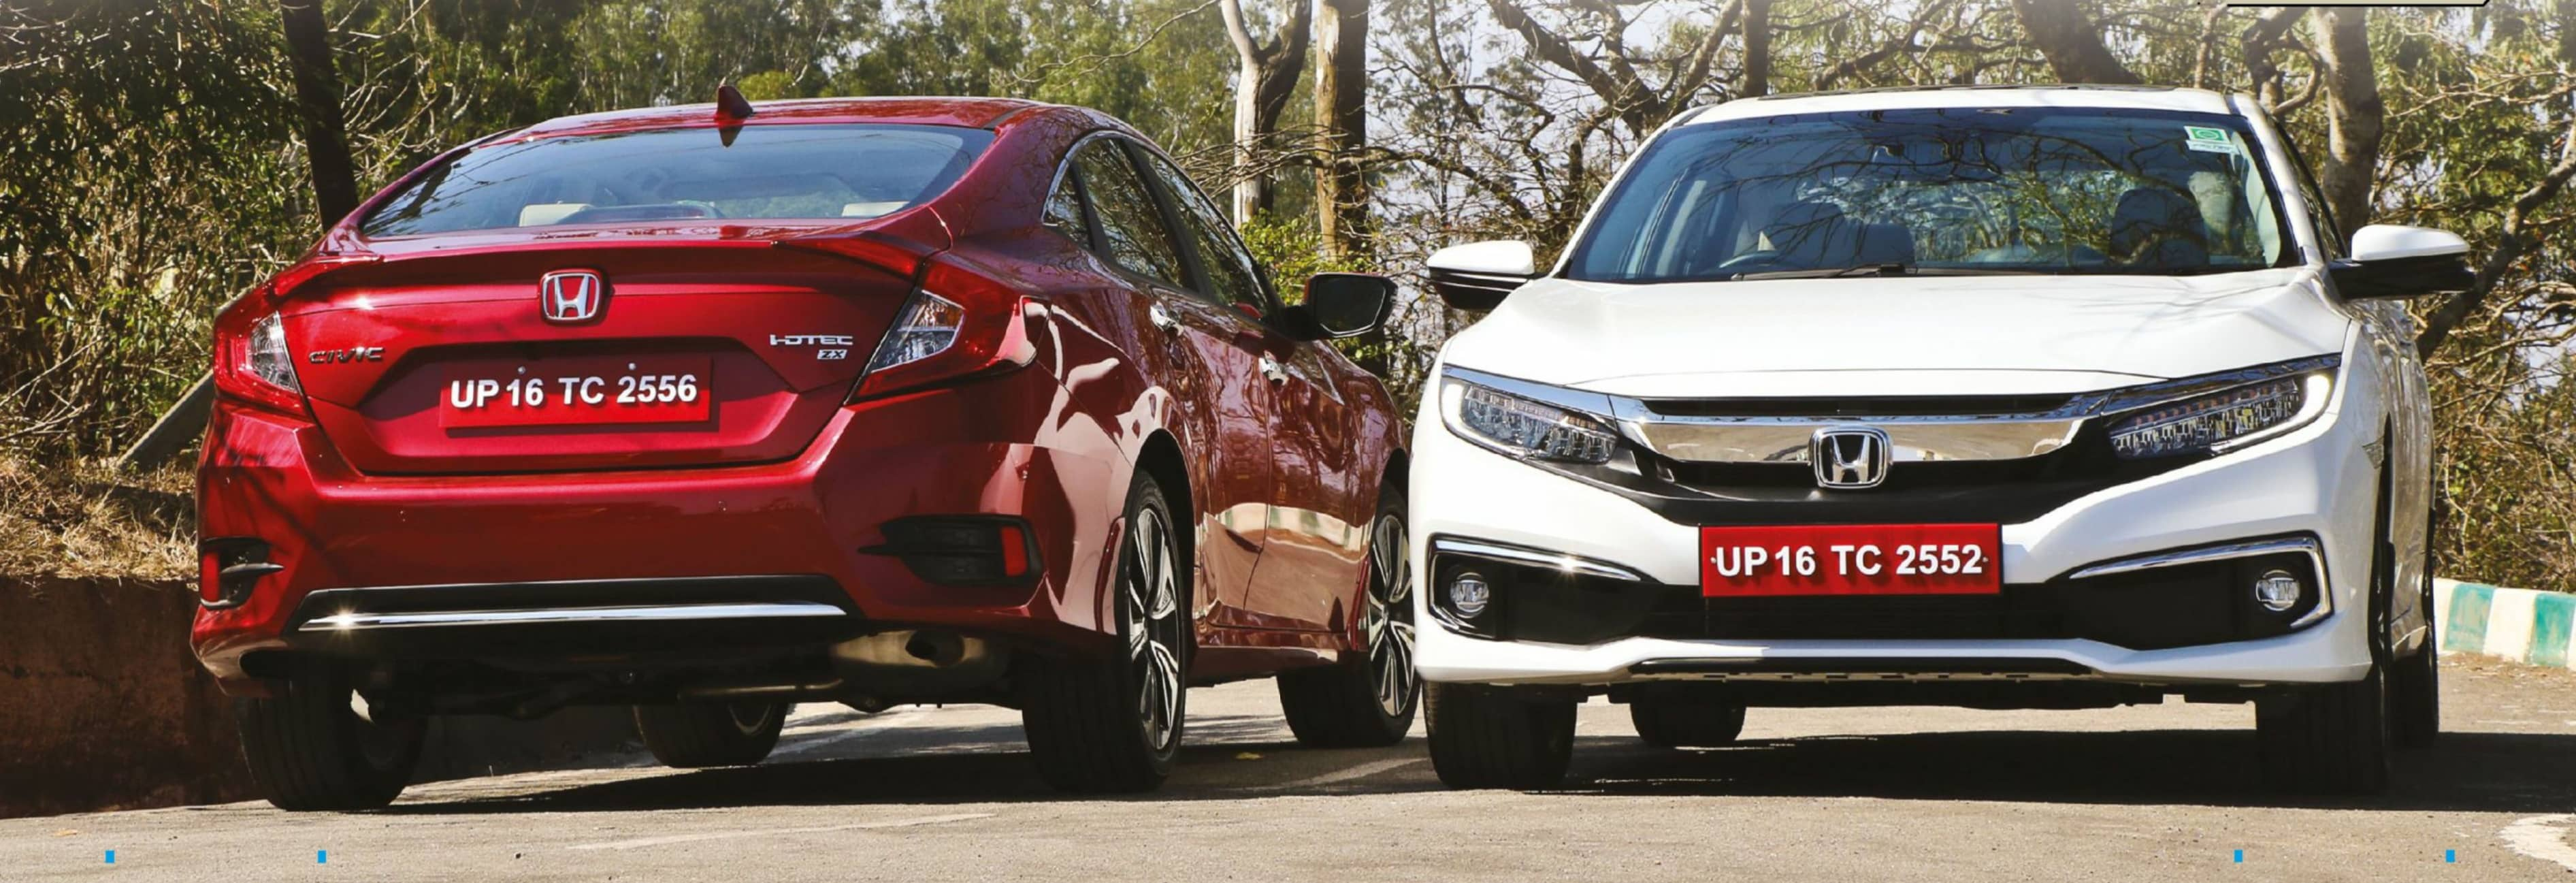 Honda Civic Returns With Stunning Looks And Diesel Engine Option